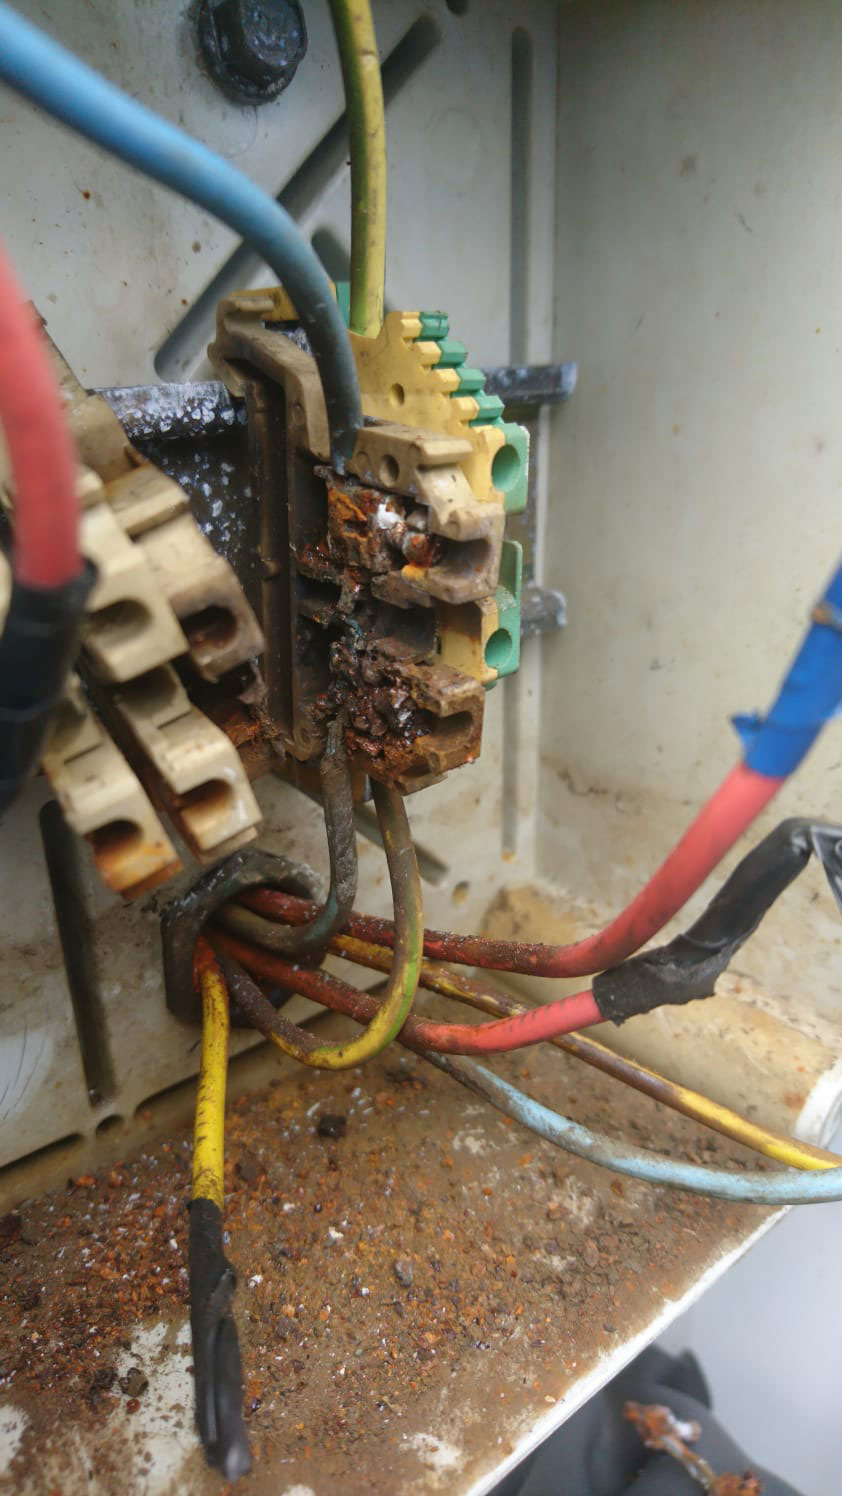 No-doubts-fire-risk-in-place-Any-bad-smell-can-mean-a-fire-starting-in-the-electric-box